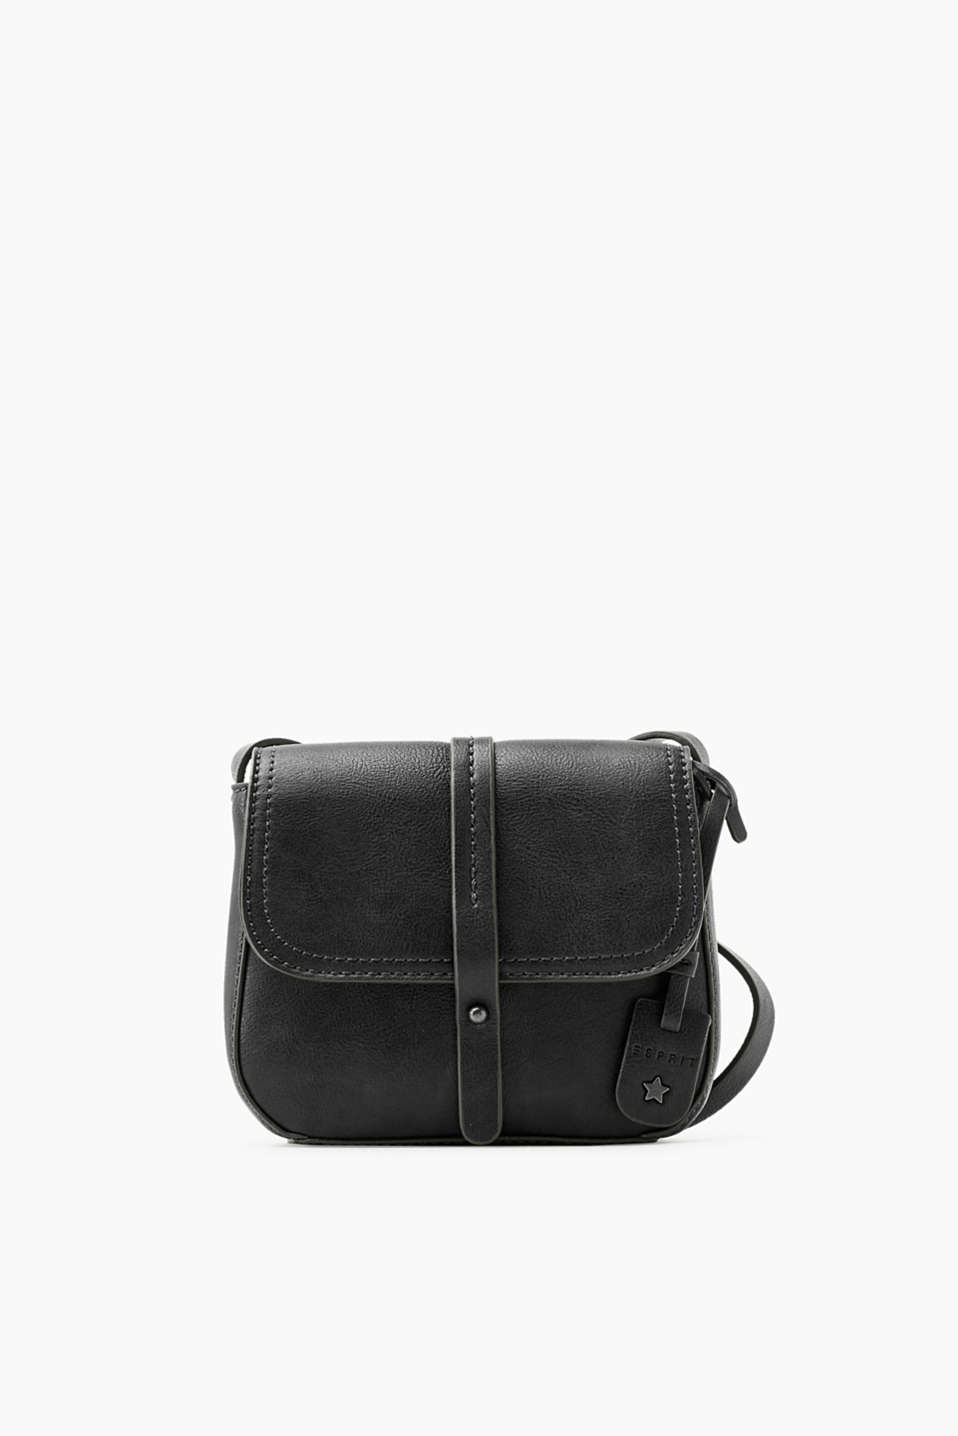 Big enough to hold all of your essentials!  This small shoulder bag impresses with its compact format.